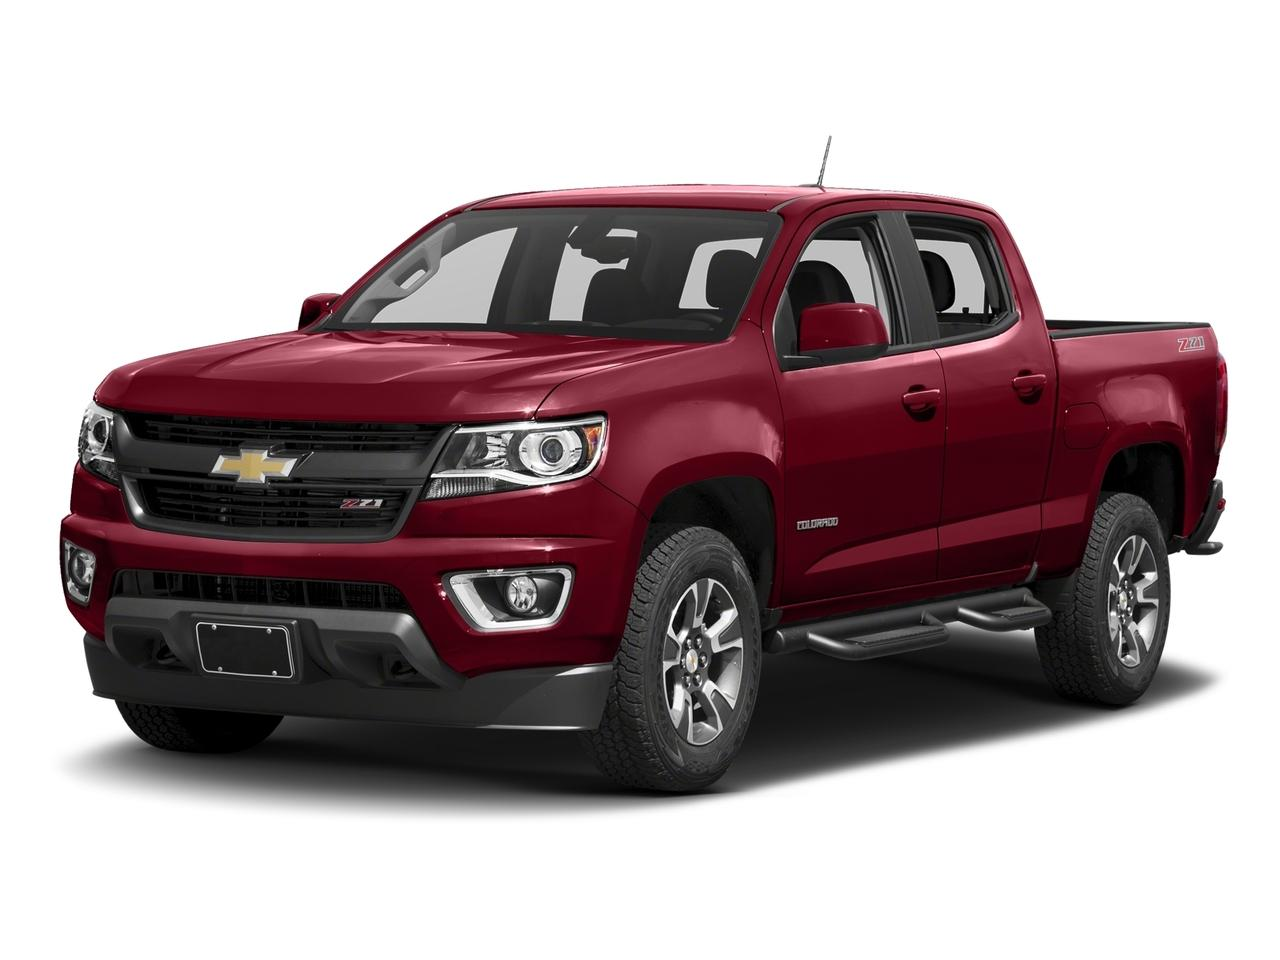 2017 Chevrolet Colorado Vehicle Photo in Peoria, IL 61615